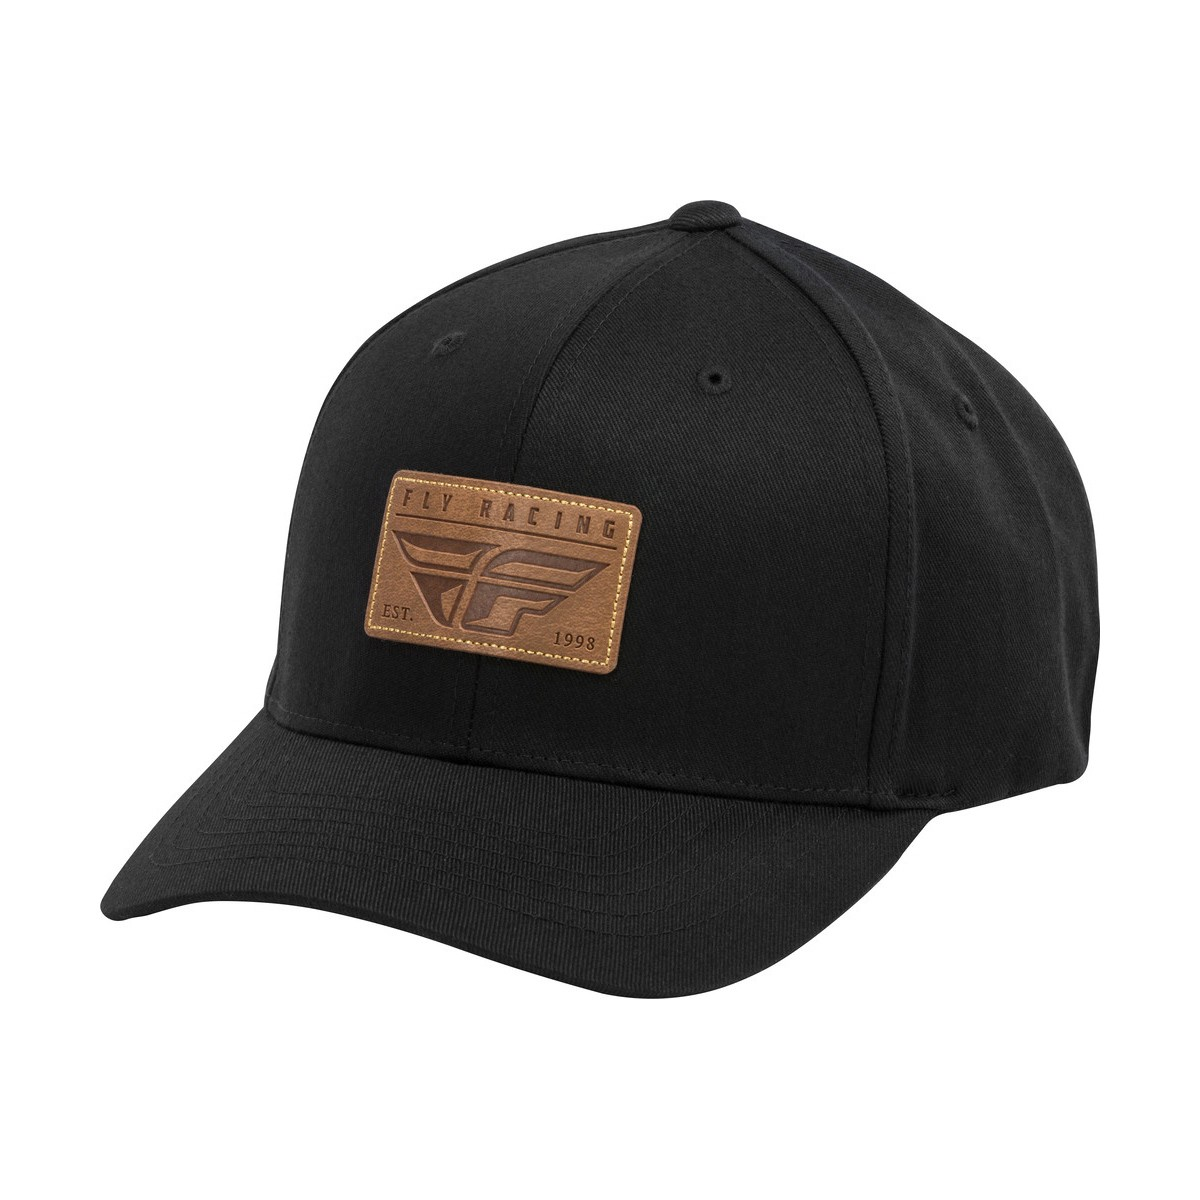 FLY CLASSIC HAT